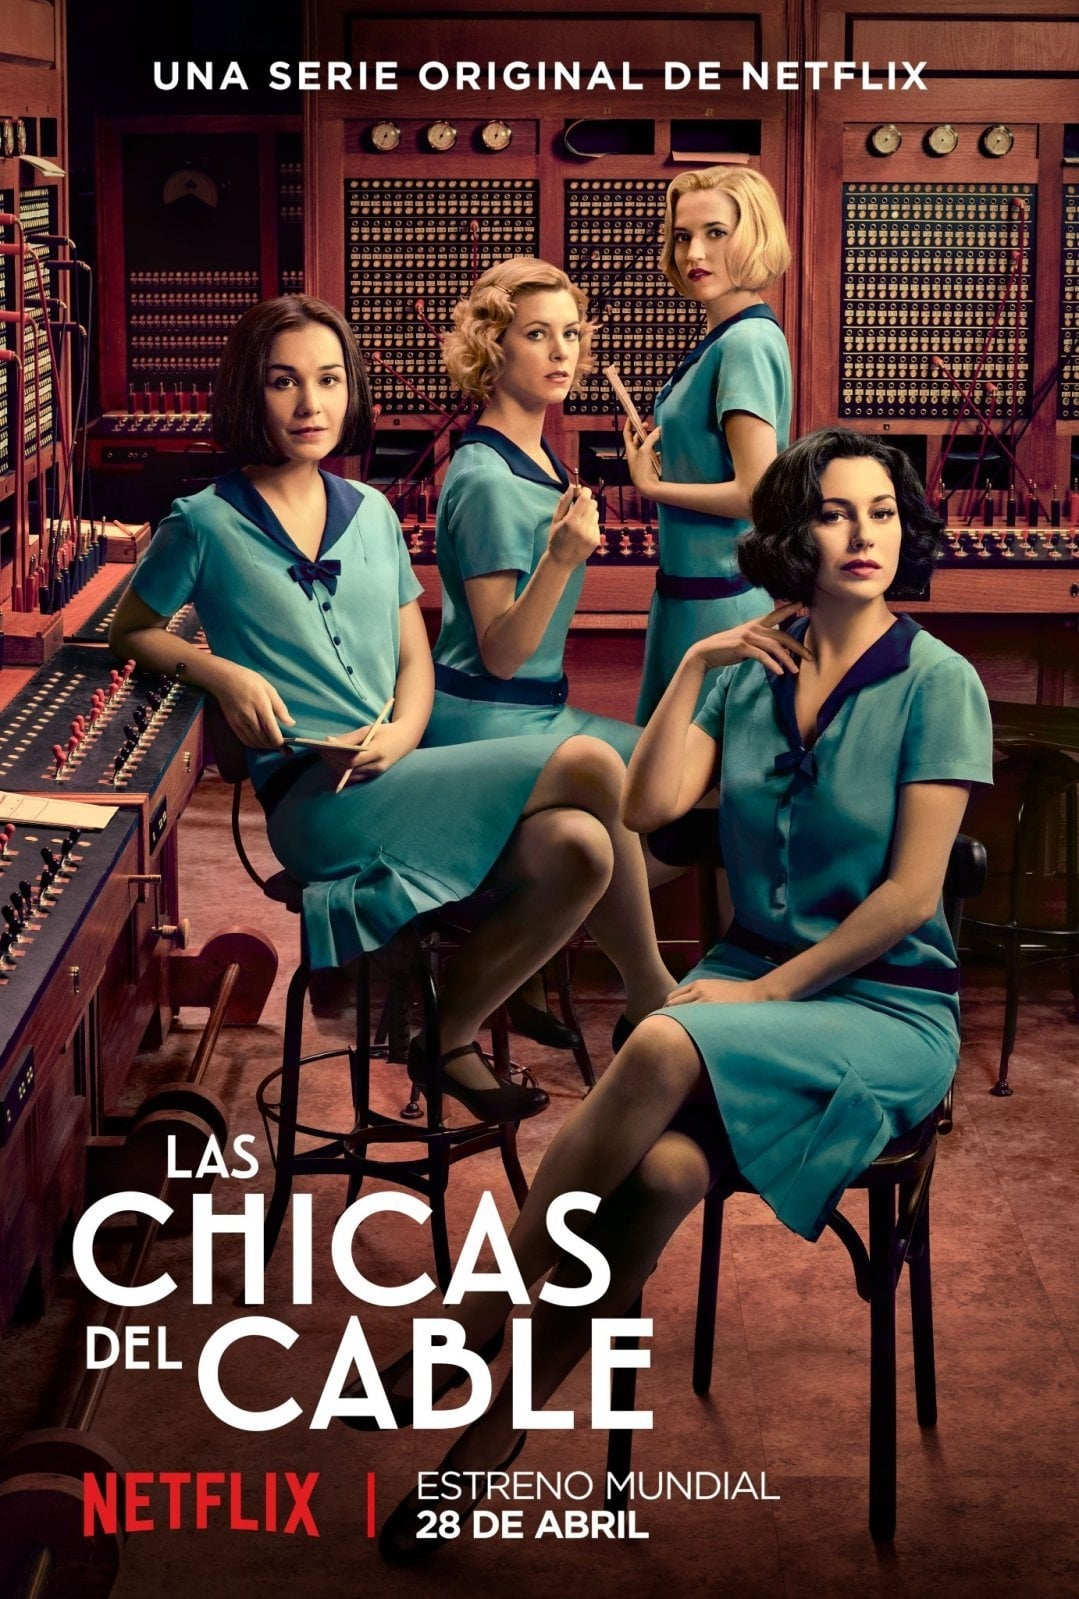 Las chicas del cable – Todas as Temporadas Dublado / Legendado (2017)